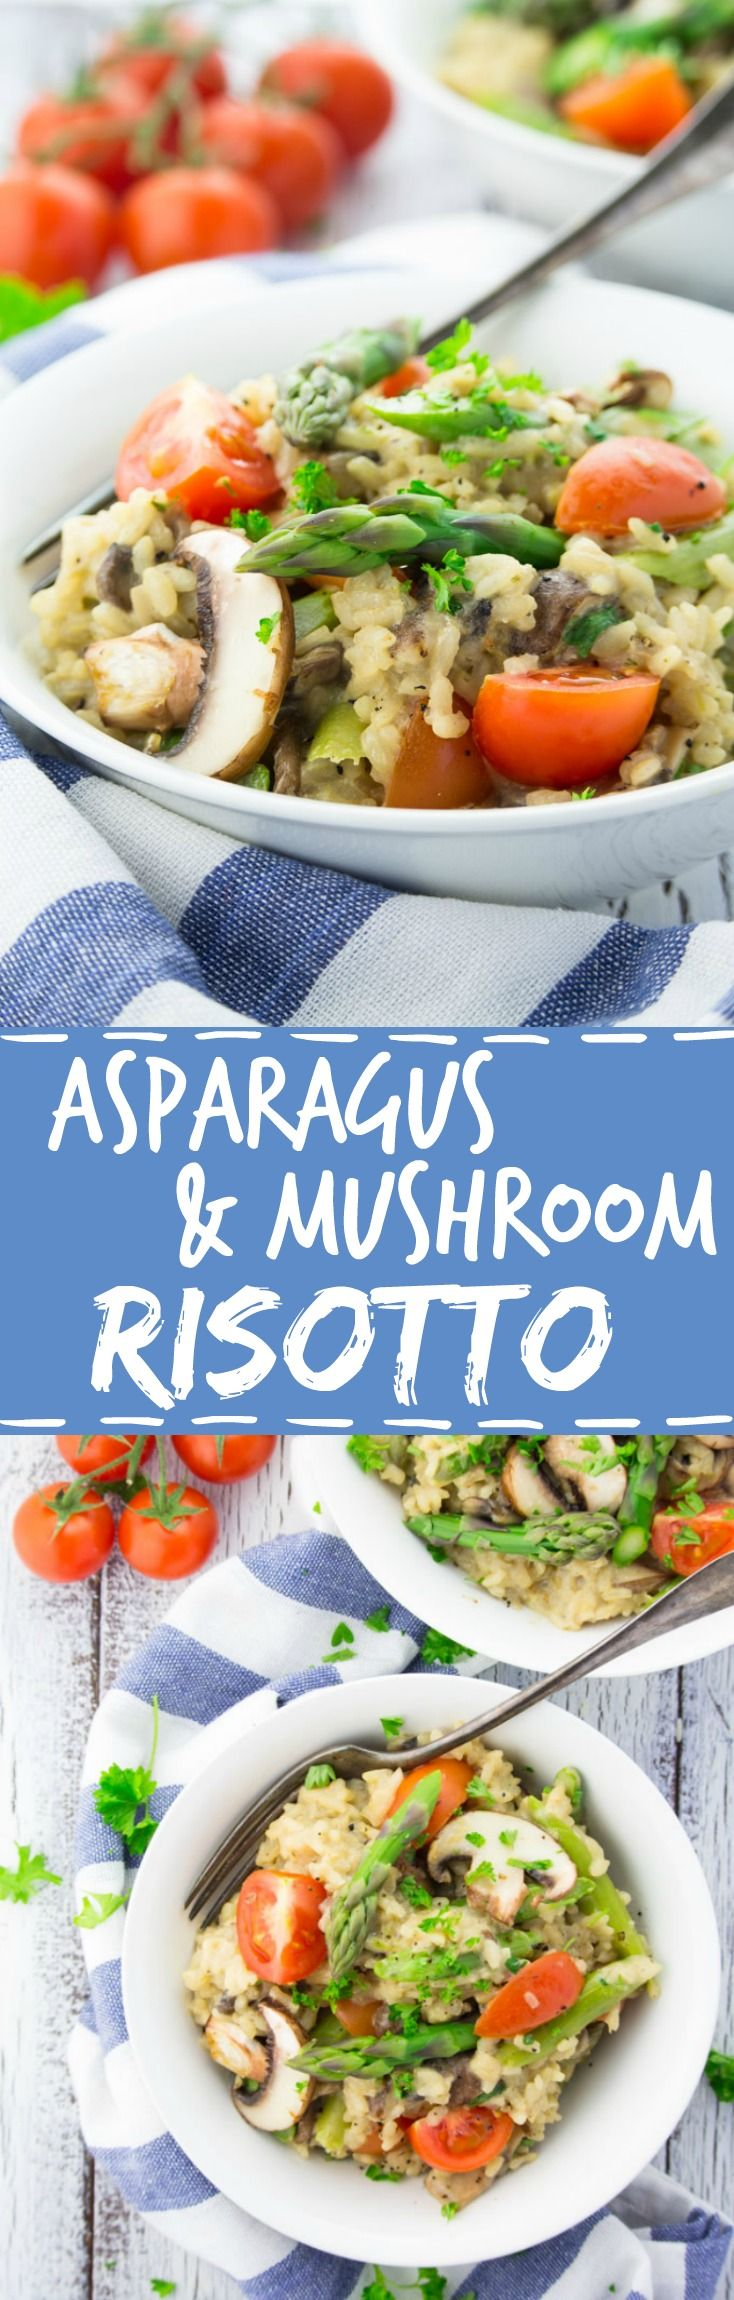 This vegan spring risotto with asparagus and mushrooms is super creamy, cheesy, wine-infused, and packed with flavor! @veganheavenorg